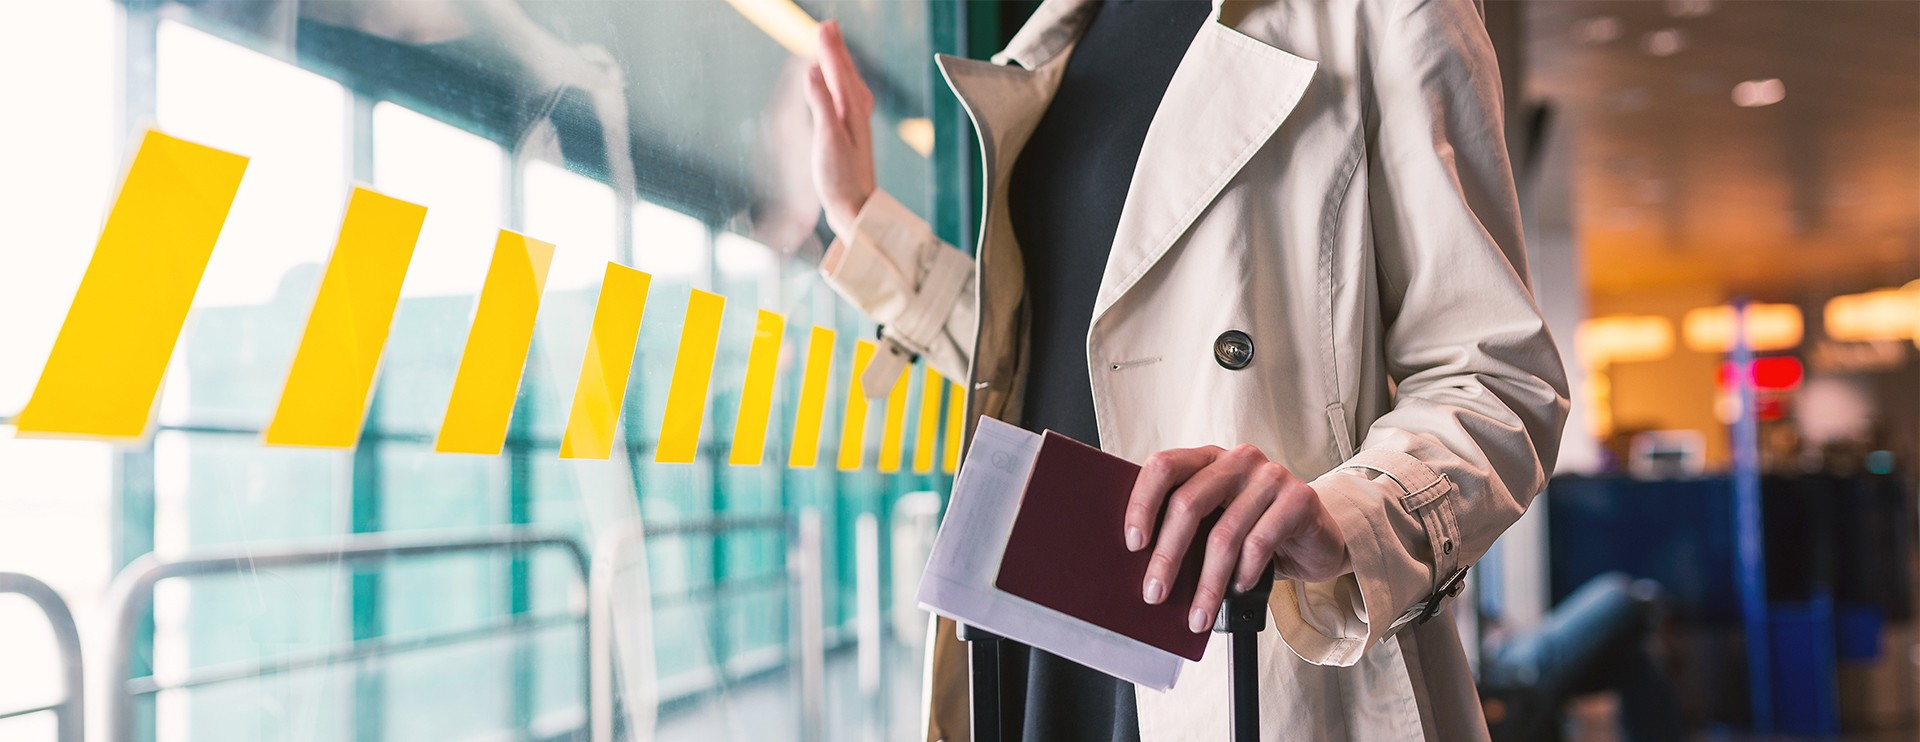 woman at airport with passport and further documents